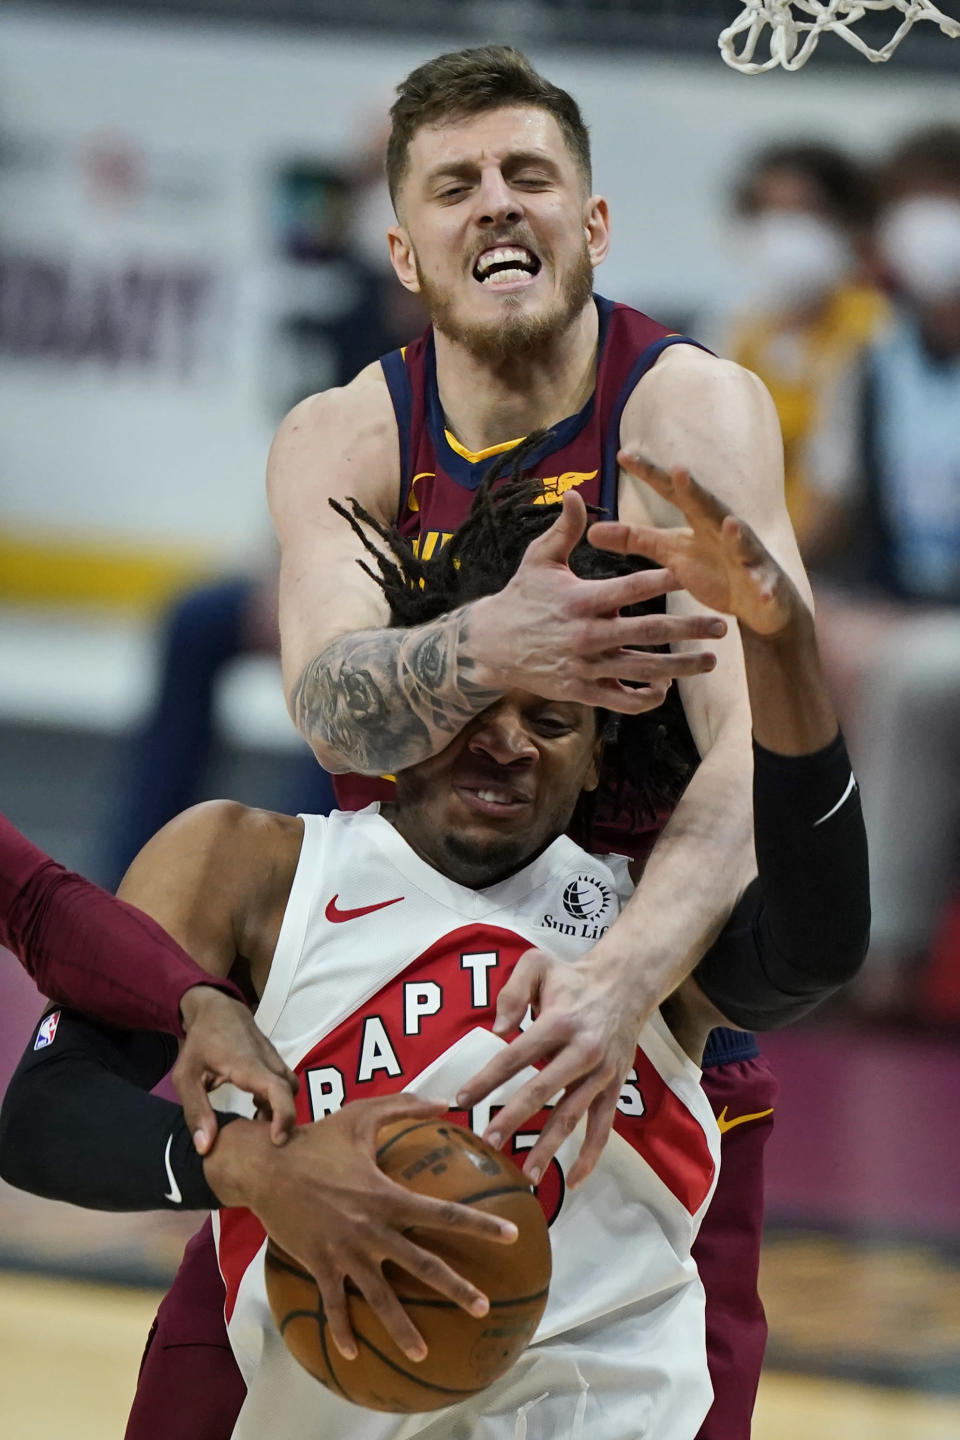 Cleveland Cavaliers Isaiah Hartenstein, top, knocks the ball loose from Toronto Raptors' Freddie Gillespie in the first half of an NBA basketball game, Saturday, April 10, 2021, in Cleveland. (AP Photo/Tony Dejak)